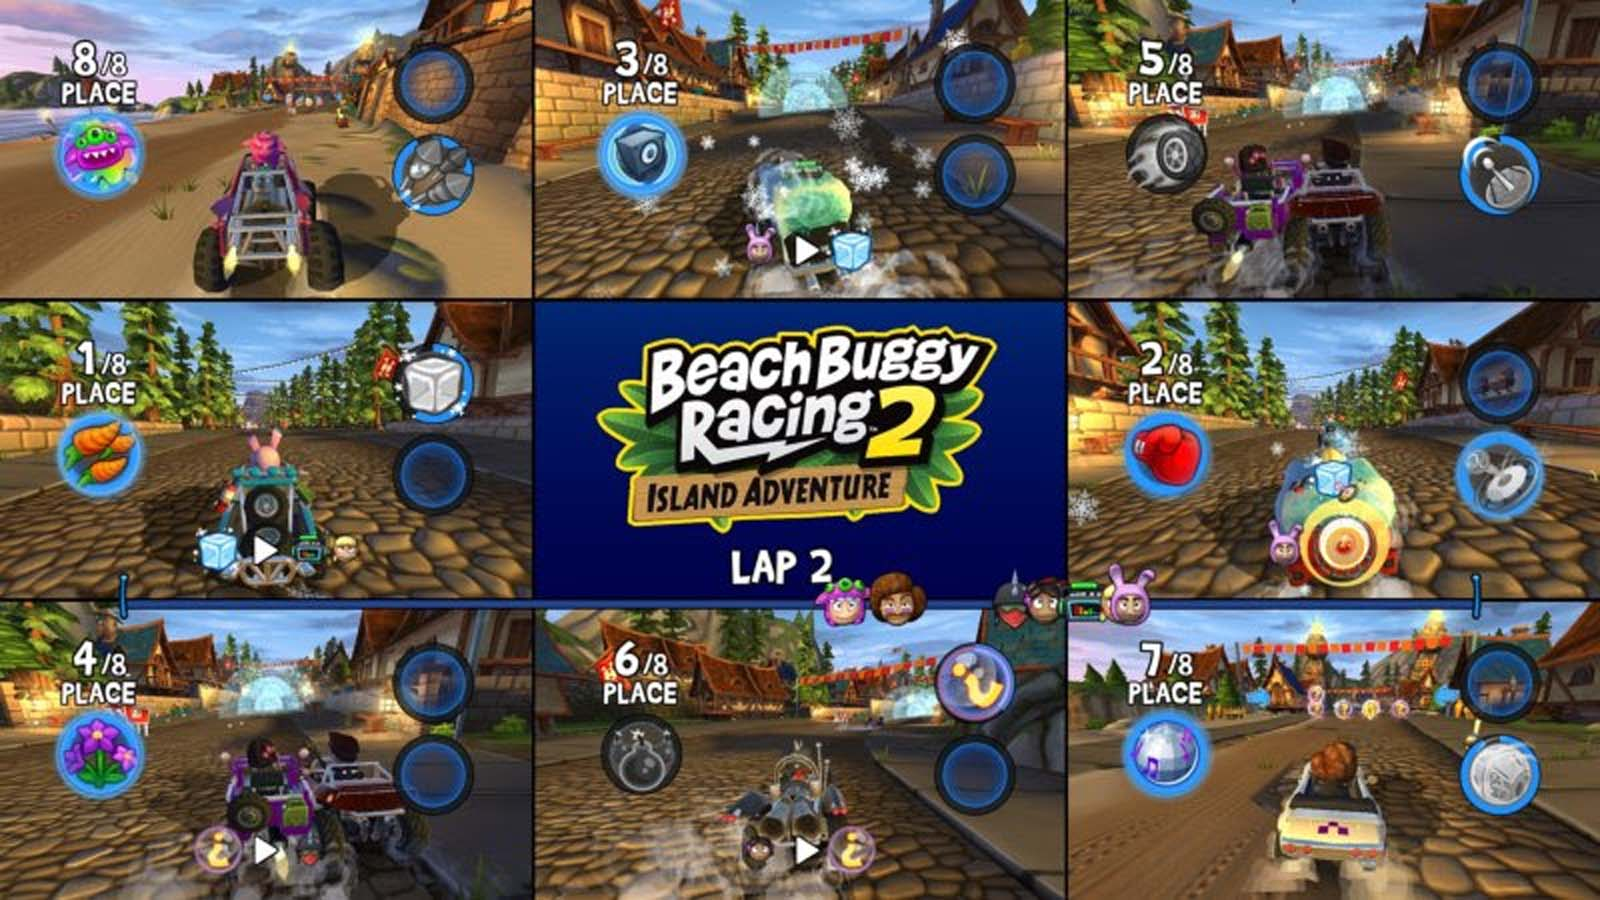 Beach Buggy Racing 2 Island Adventure out March 17 on consoles